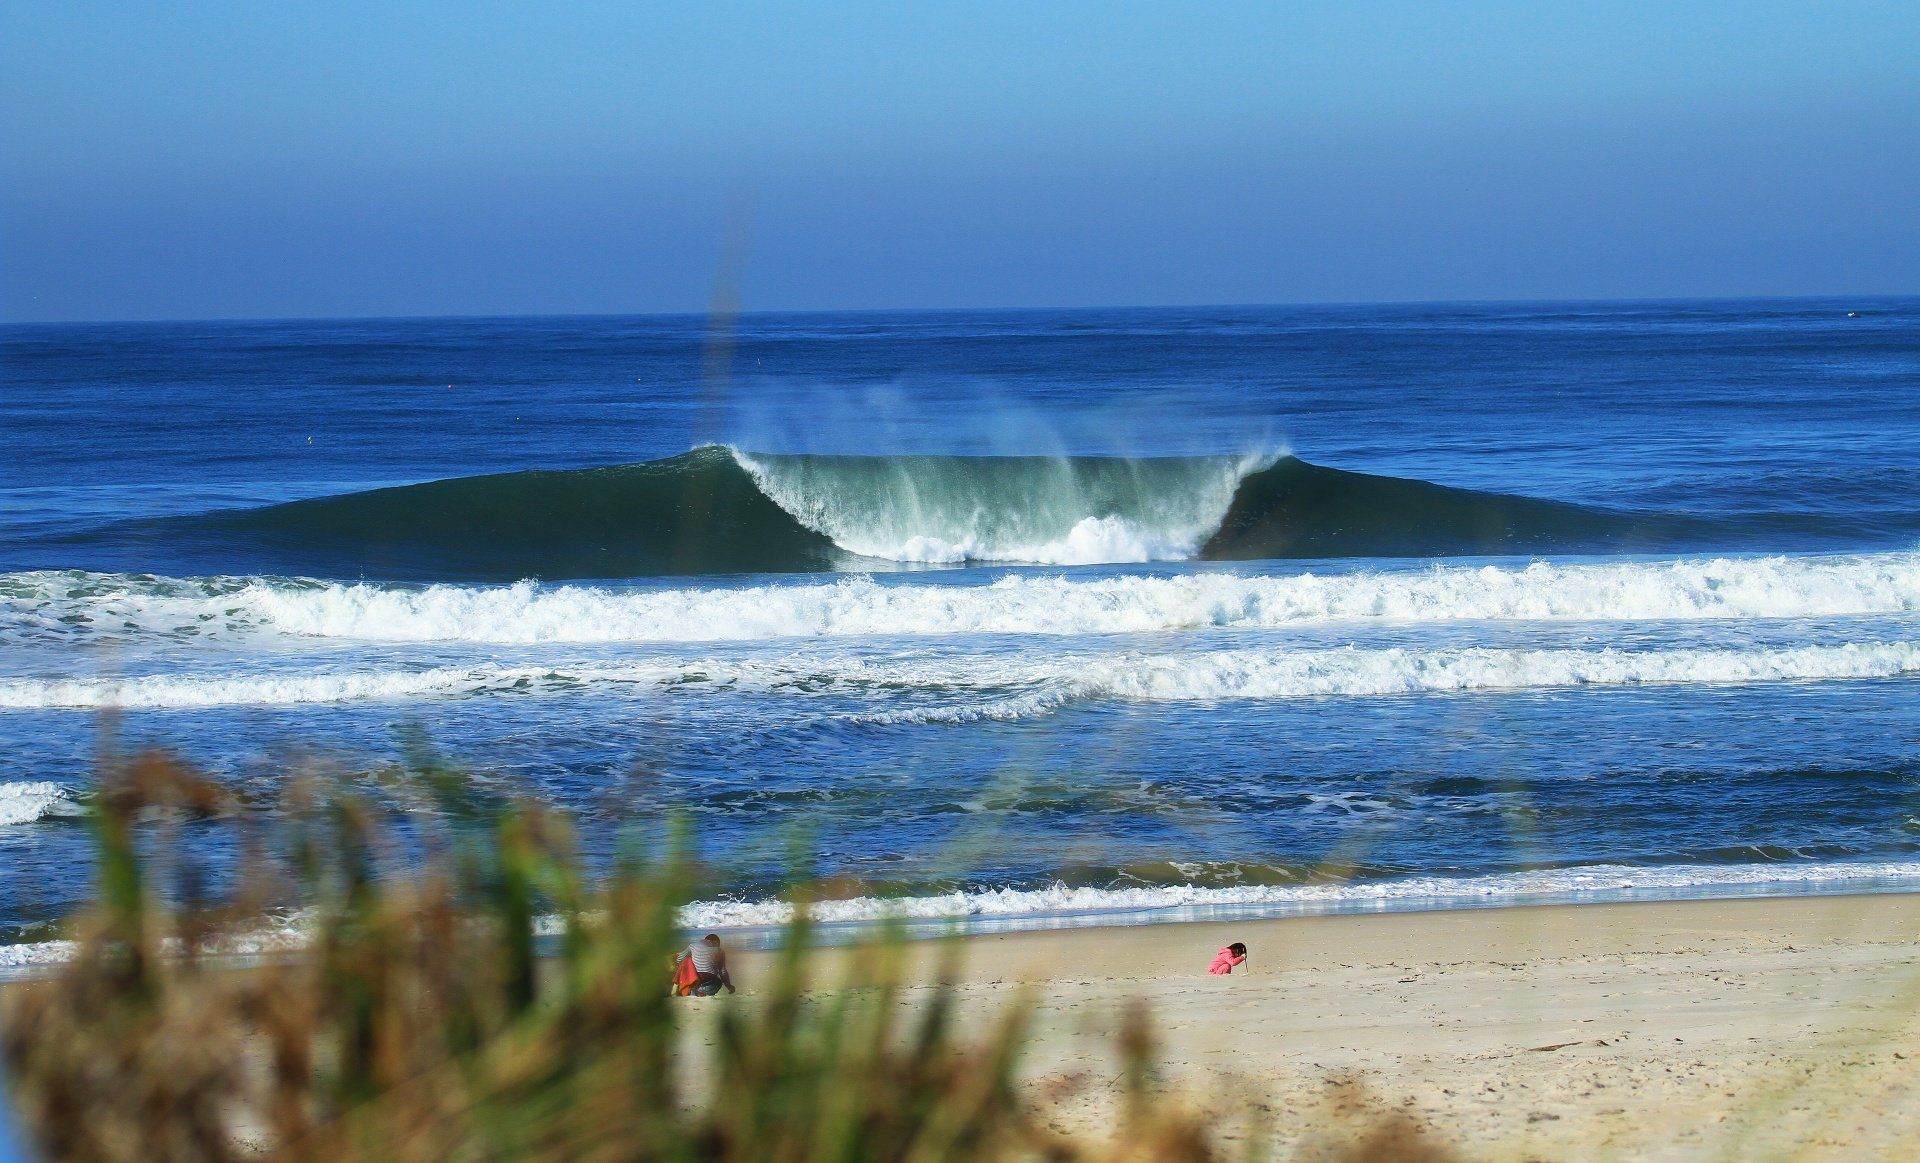 pikas99's photo of Aguçadoura